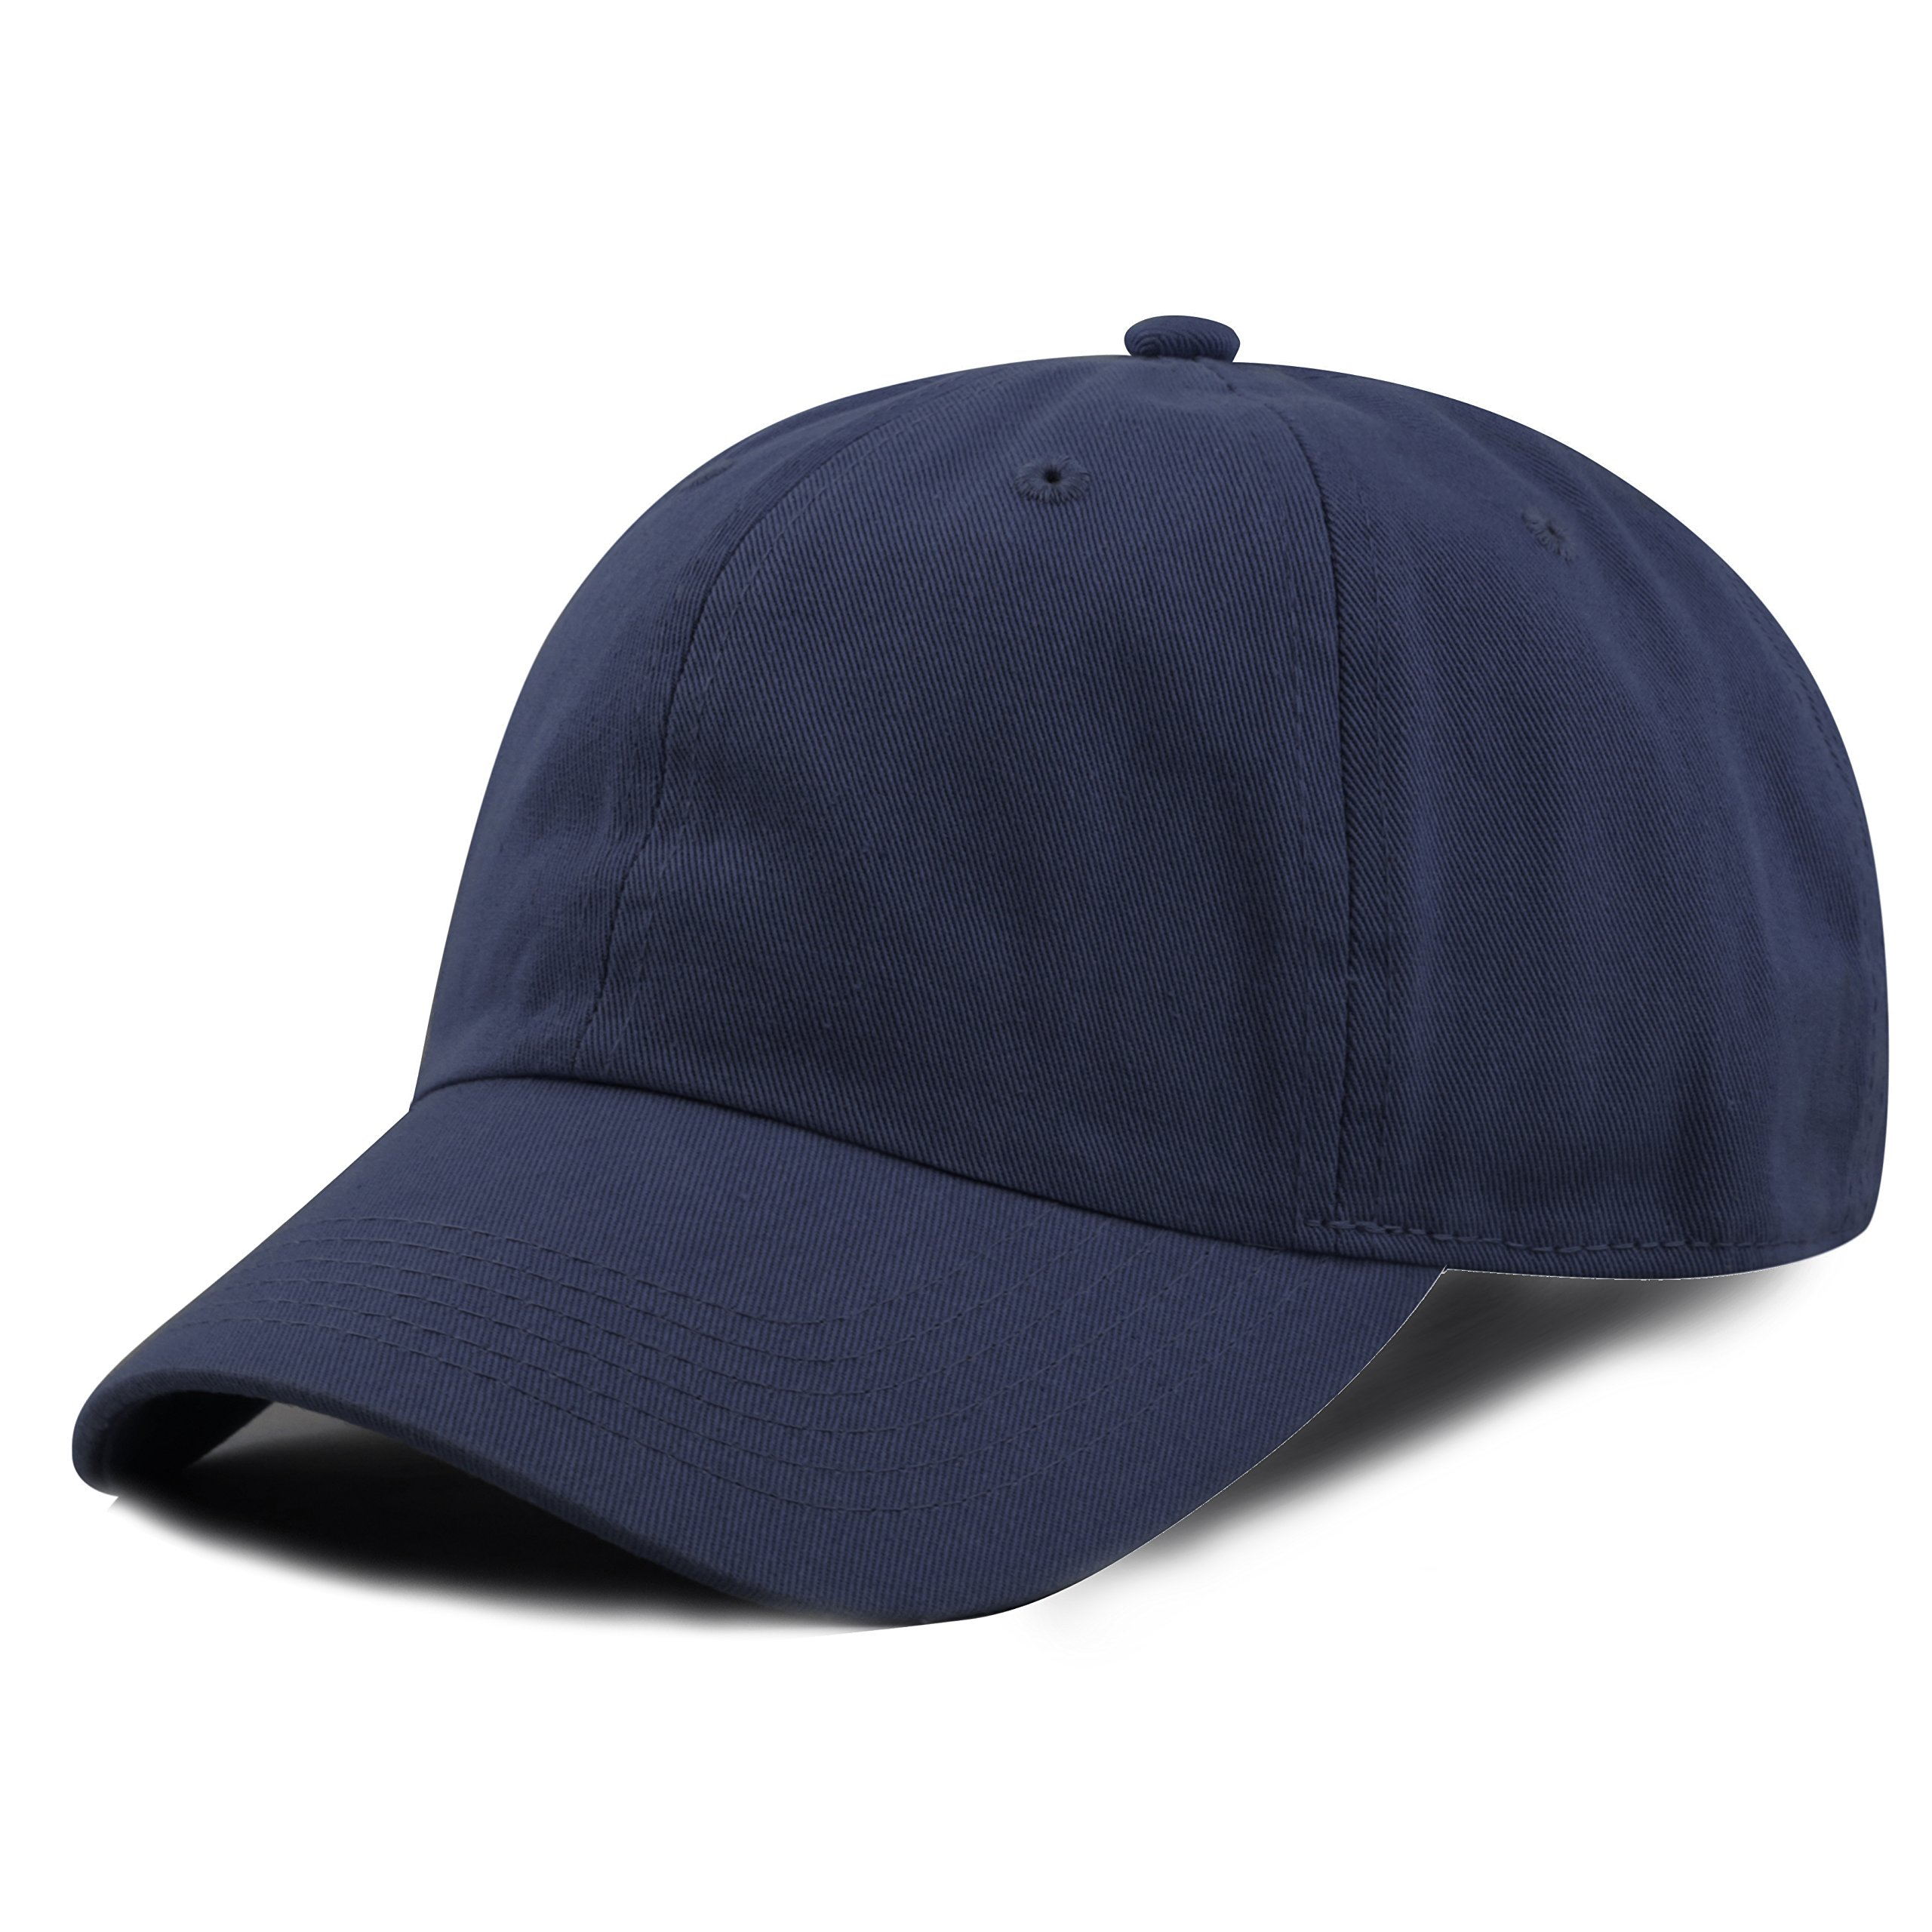 4a12b3e50 THE HAT DEPOT Kids Washed Low Profile Cotton and Denim Plain Baseball Cap  Hat product image